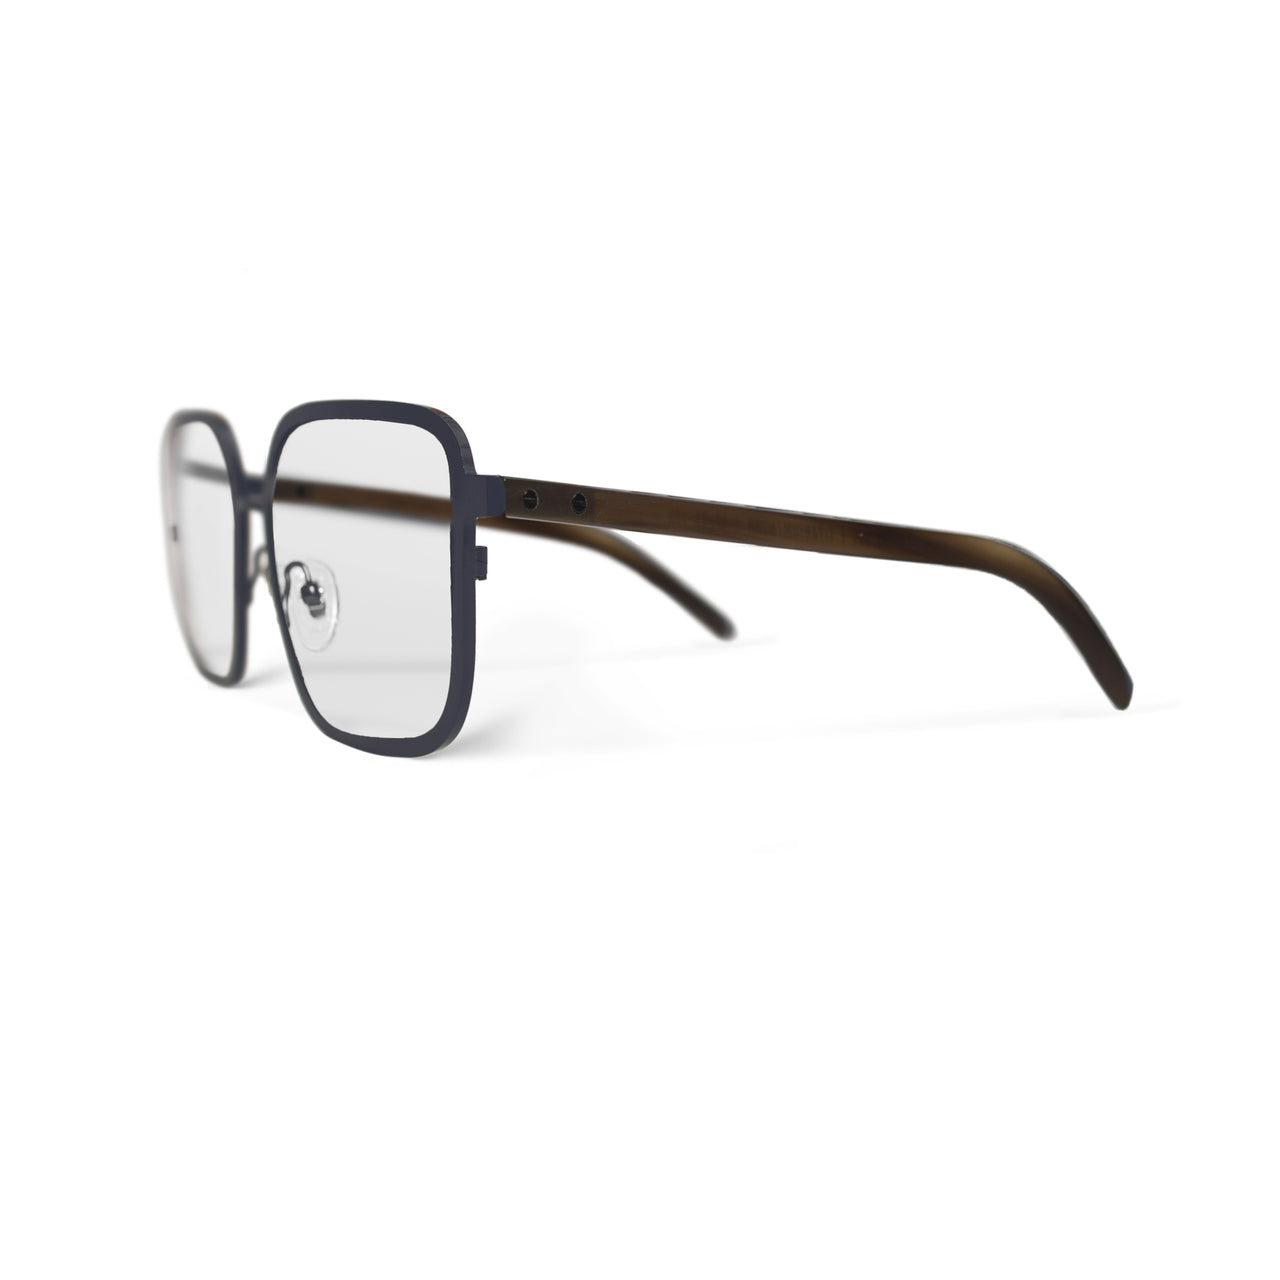 Metal / Horn. Marine / Blonde. Clear Lens - BLYSZAK eyewear eyewear - eyewear, optical, sunglasses